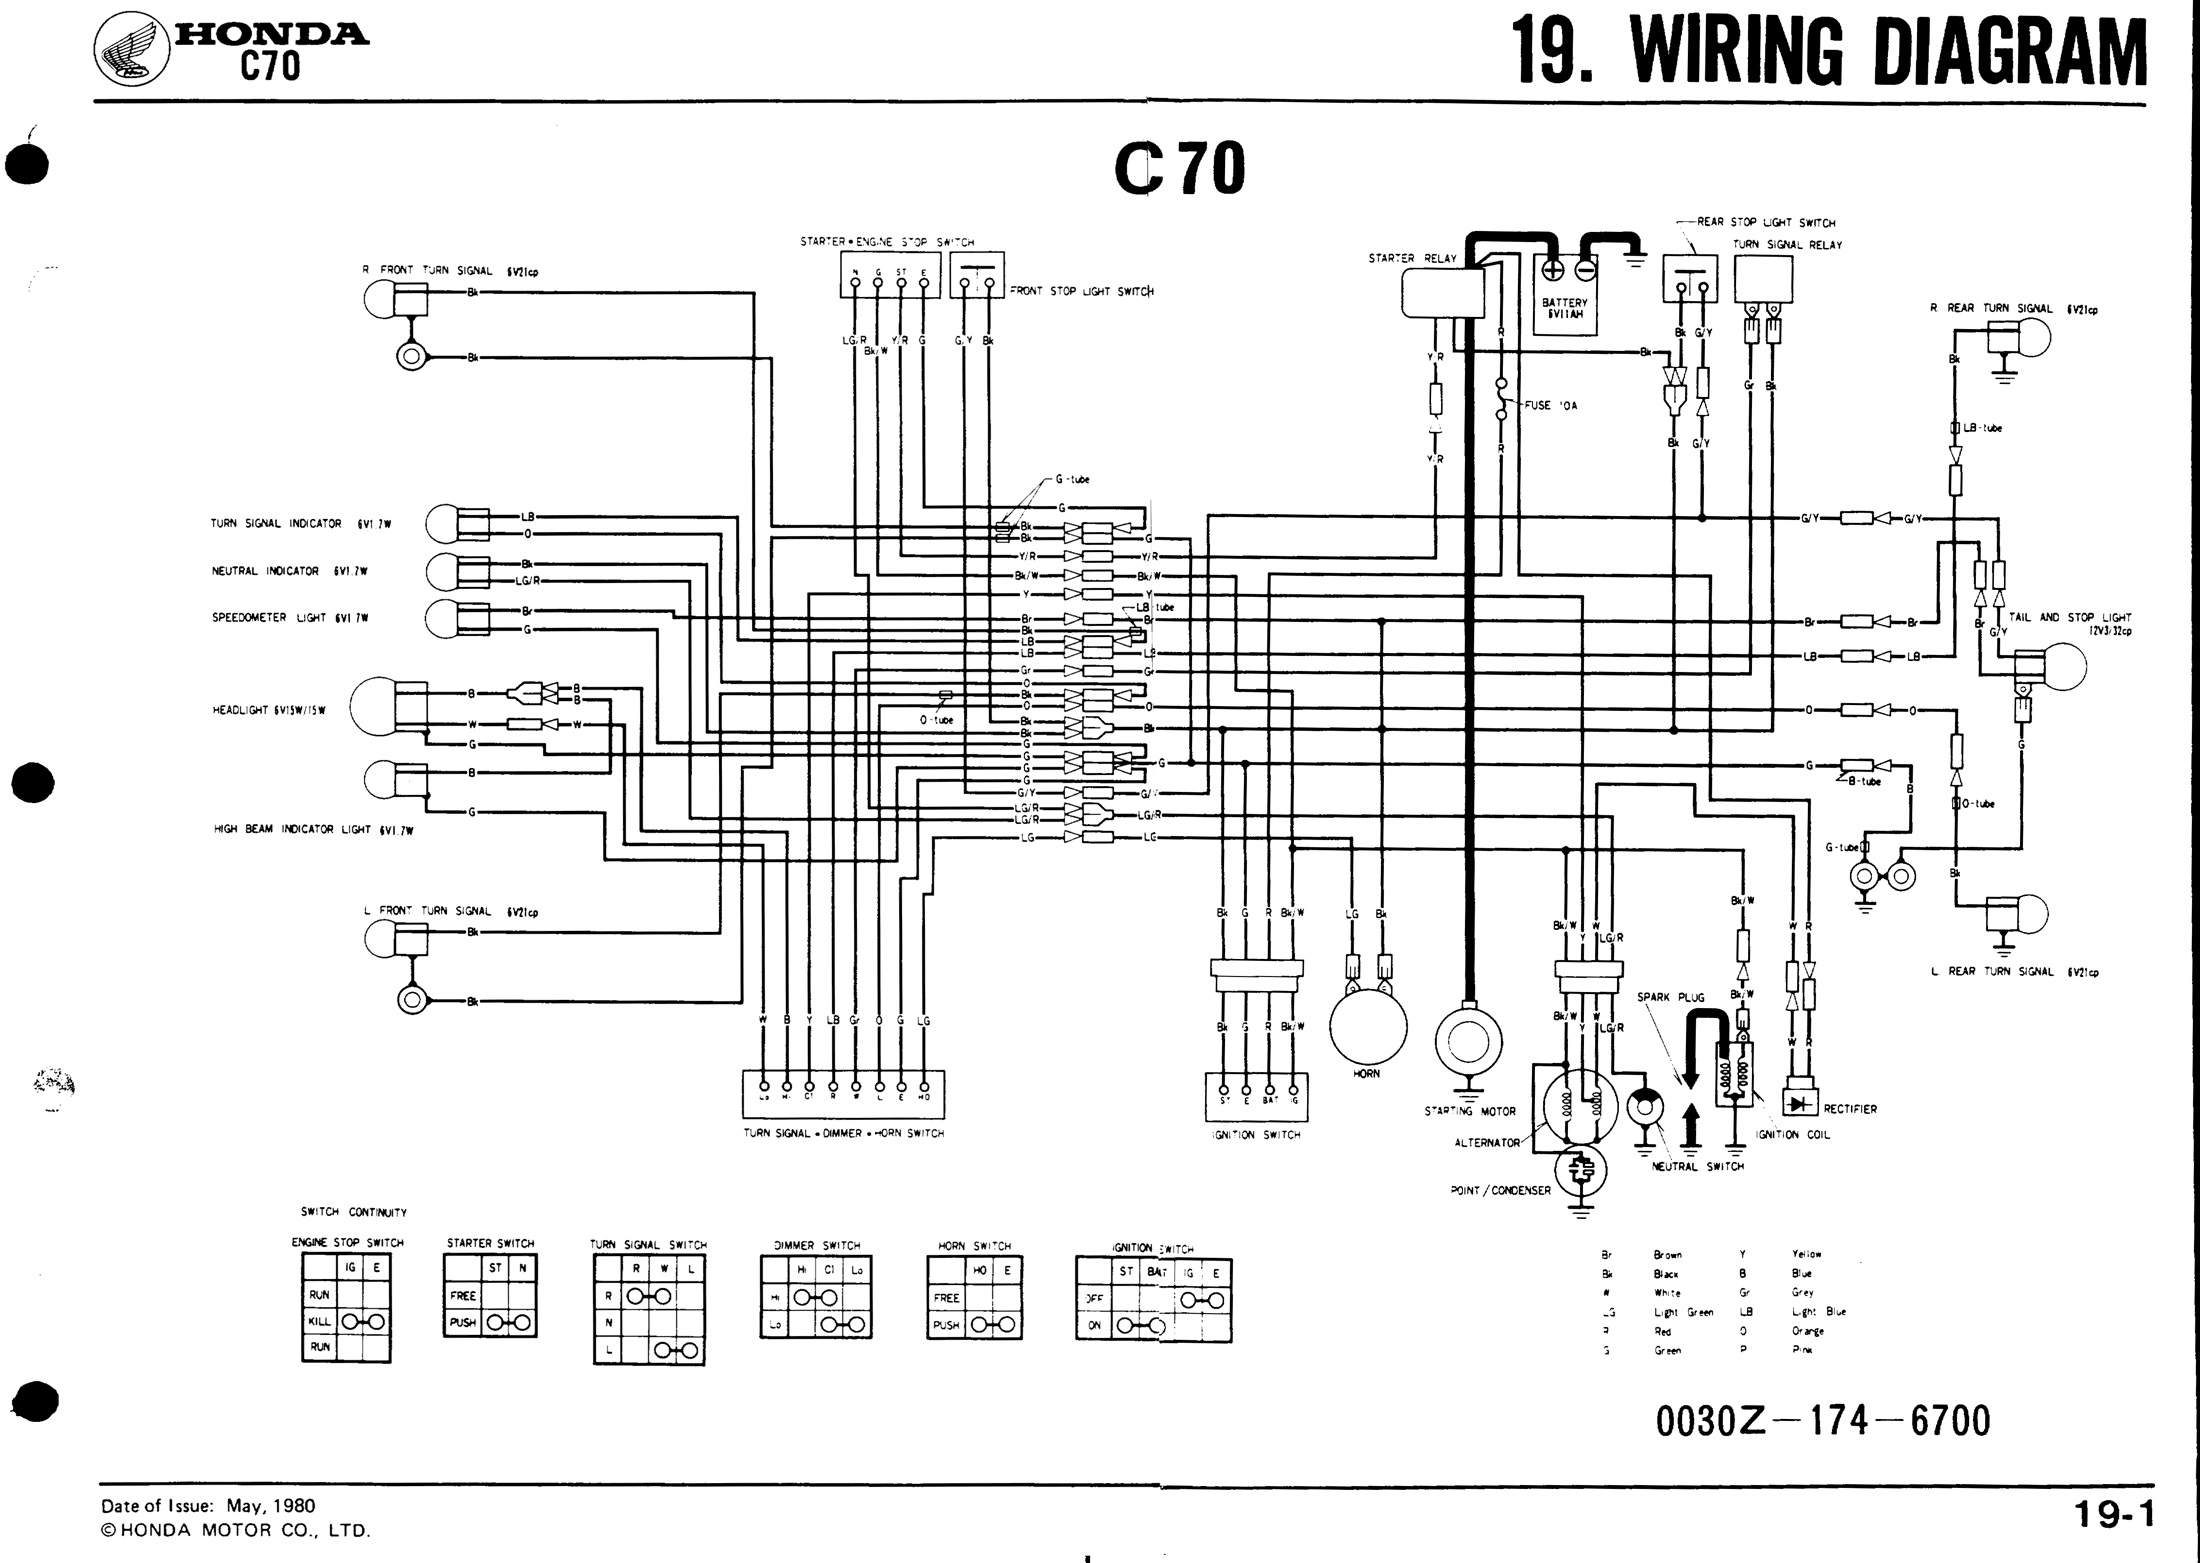 honda c70 wiring diagram wiring diagram online 91 Suzuki Wire Diagram 1983 honda c70 wiring diagrams wiring diagram volvo c70 wiring diagram honda c70 wiring diagram